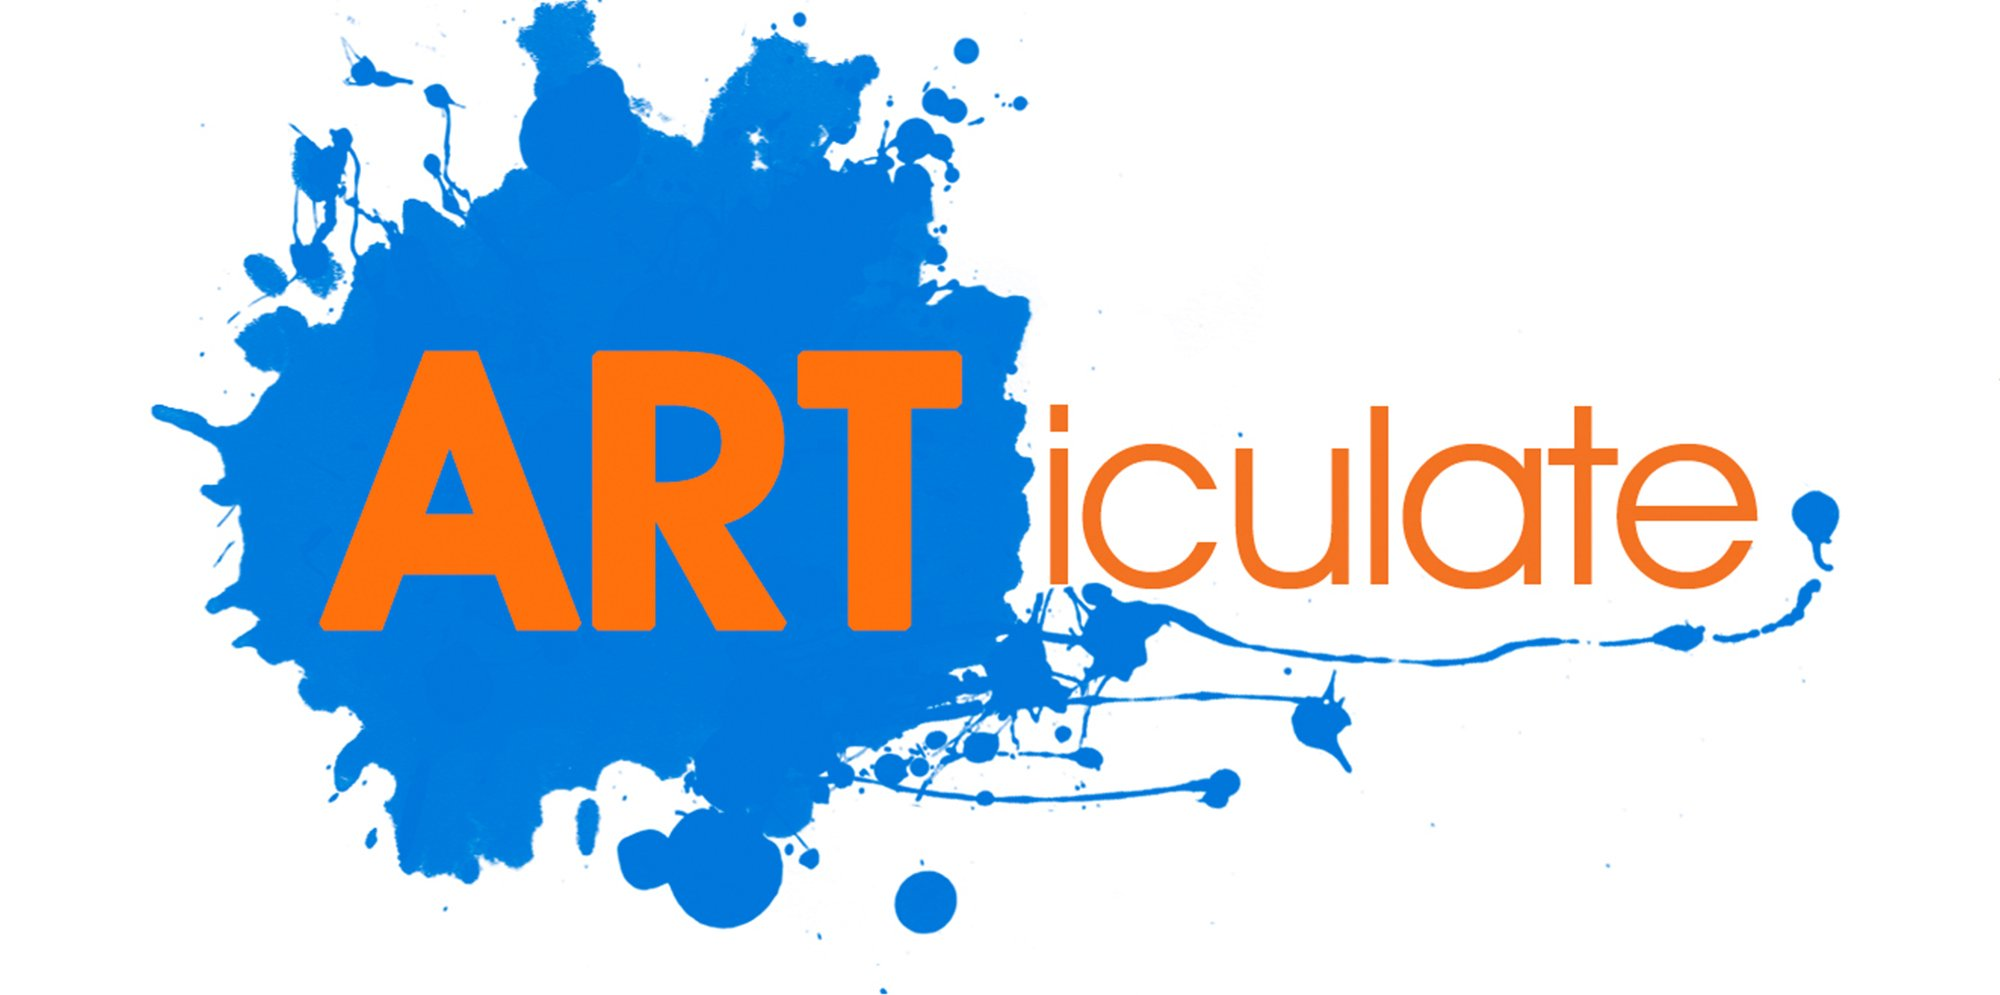 The logo for Articulate, the text is orange, with the letters A R T capitalised against a blue paint spaltter